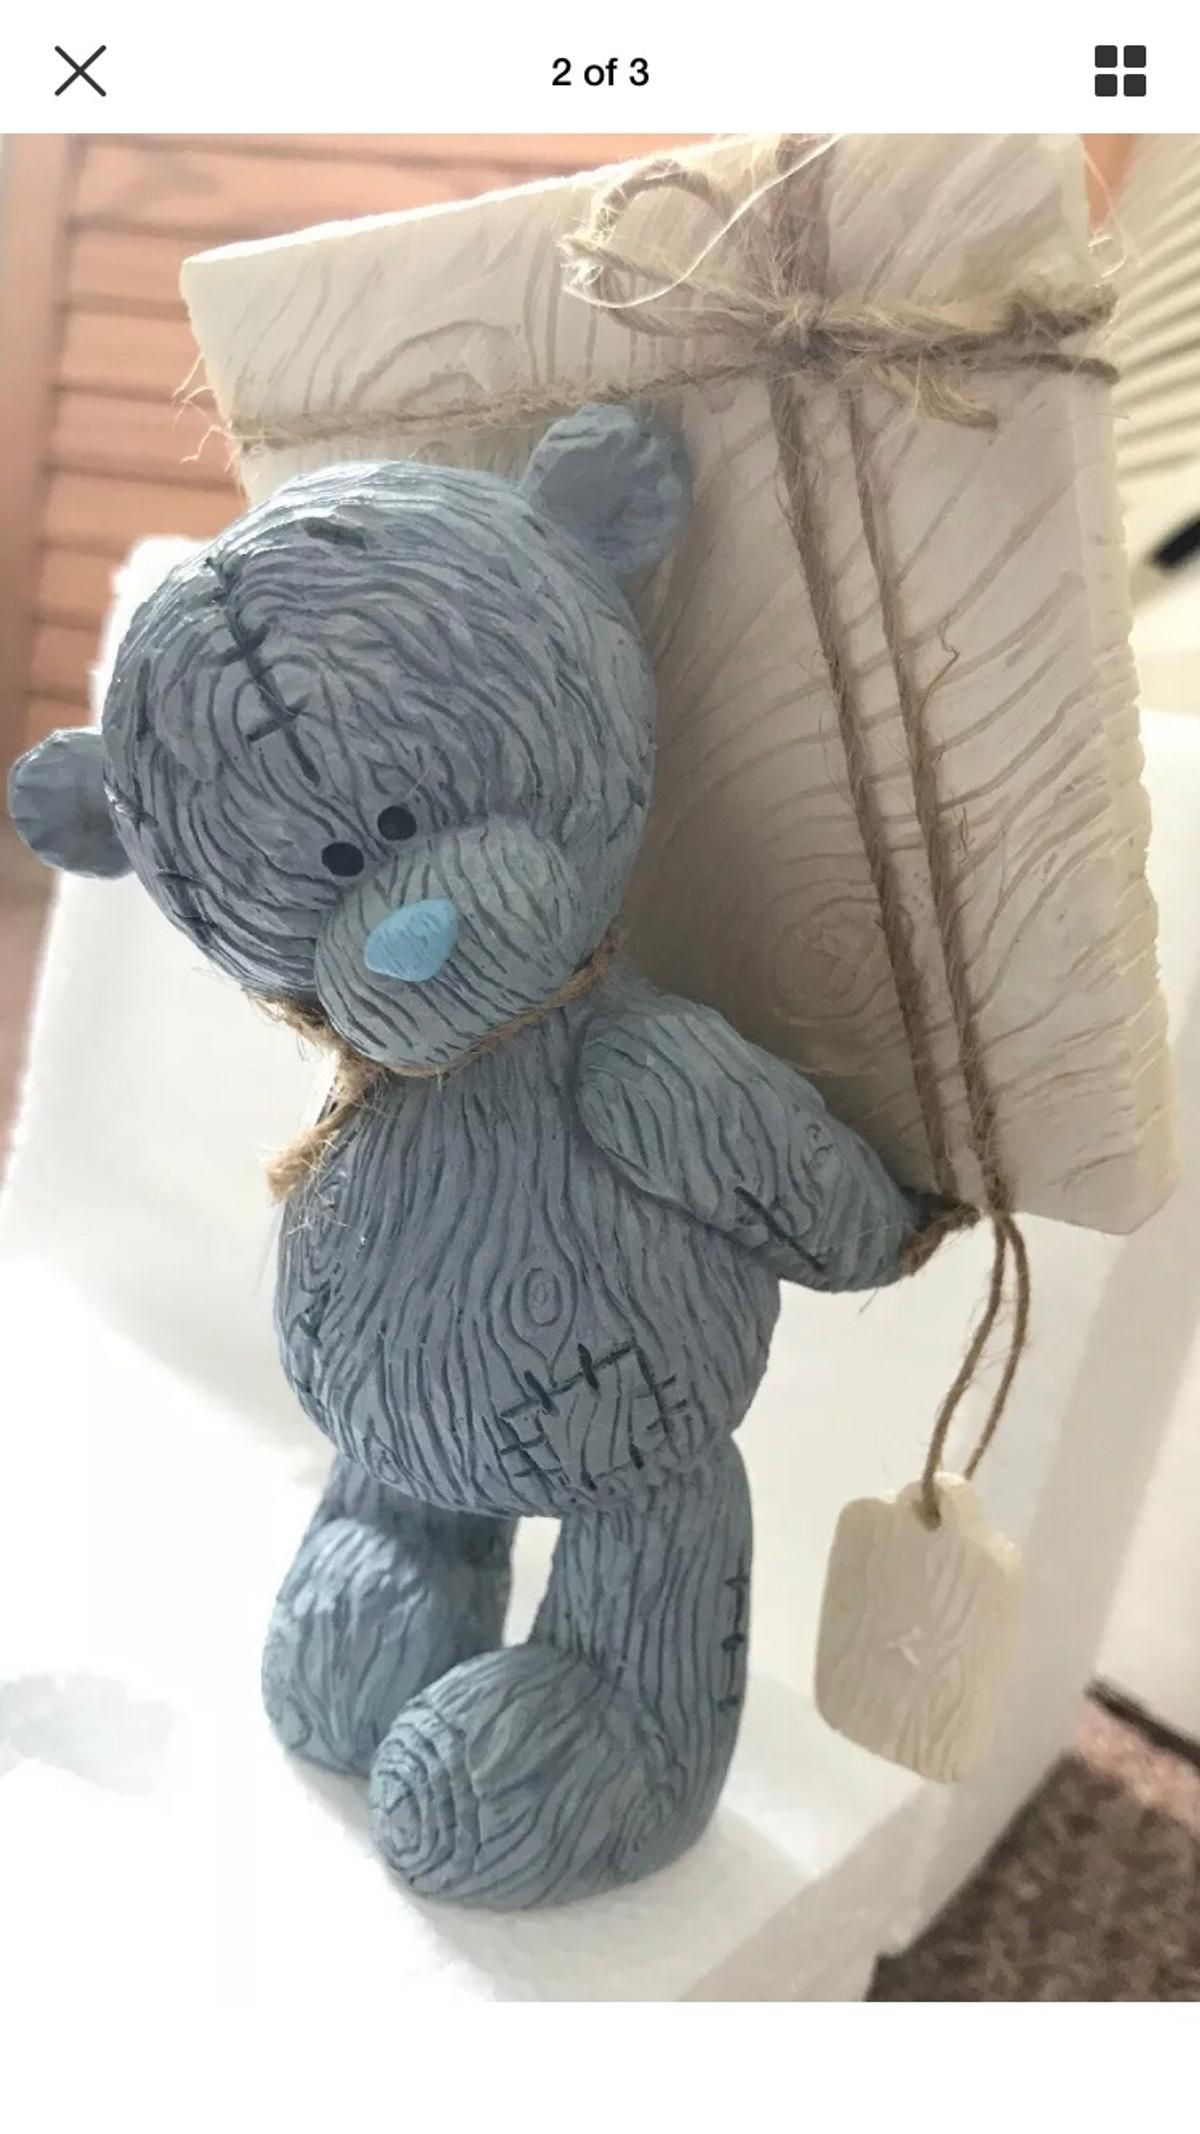 I am selling a tatty teddy bear holding a parcel. Brand new, still has original packaging. Only been opened to take photos! Open to posting with the cost of £4.95 Royal Mail 2nd class signed for!